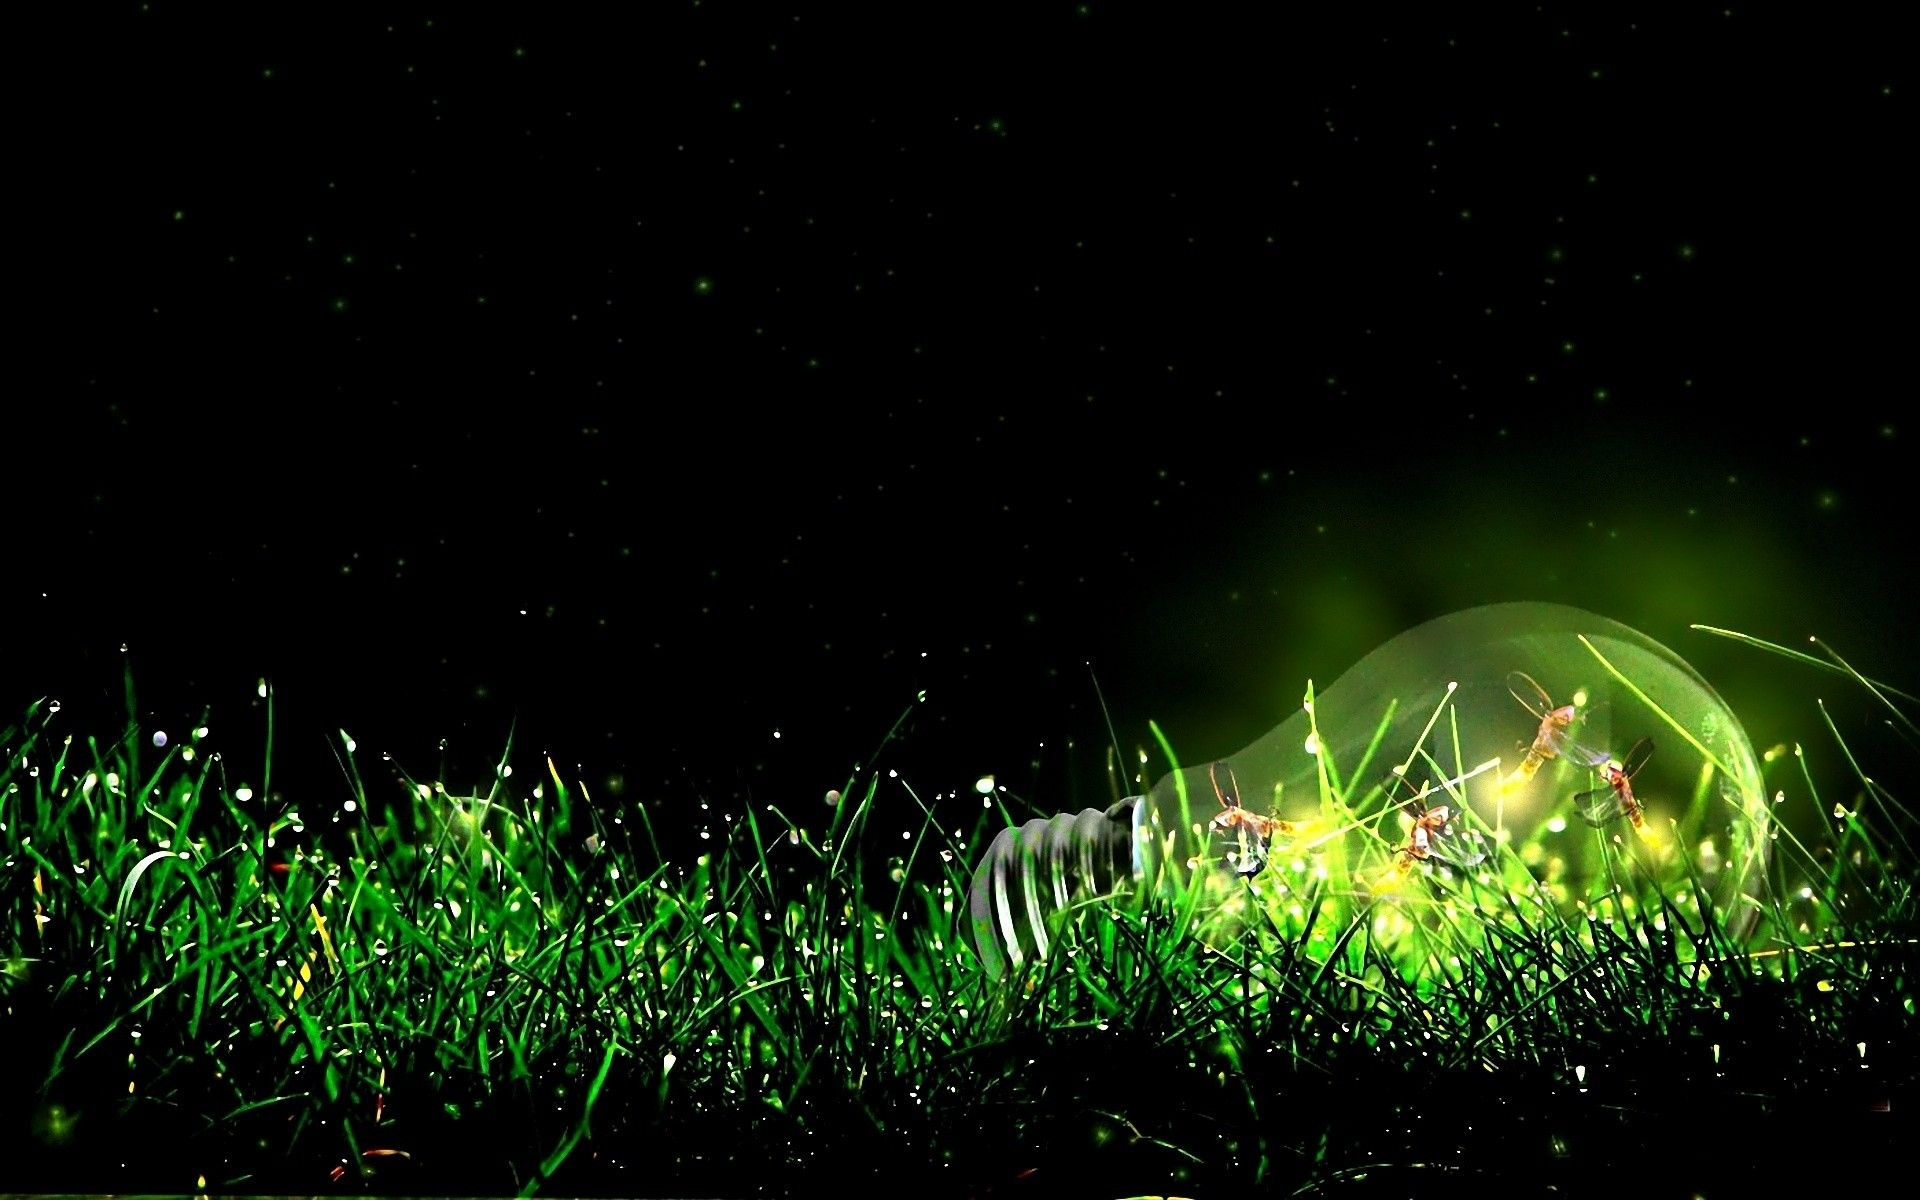 Hd Wallpapers Girls 1366x768 Insects Bulb Light Grass Wallpapers Insects Bulb Light